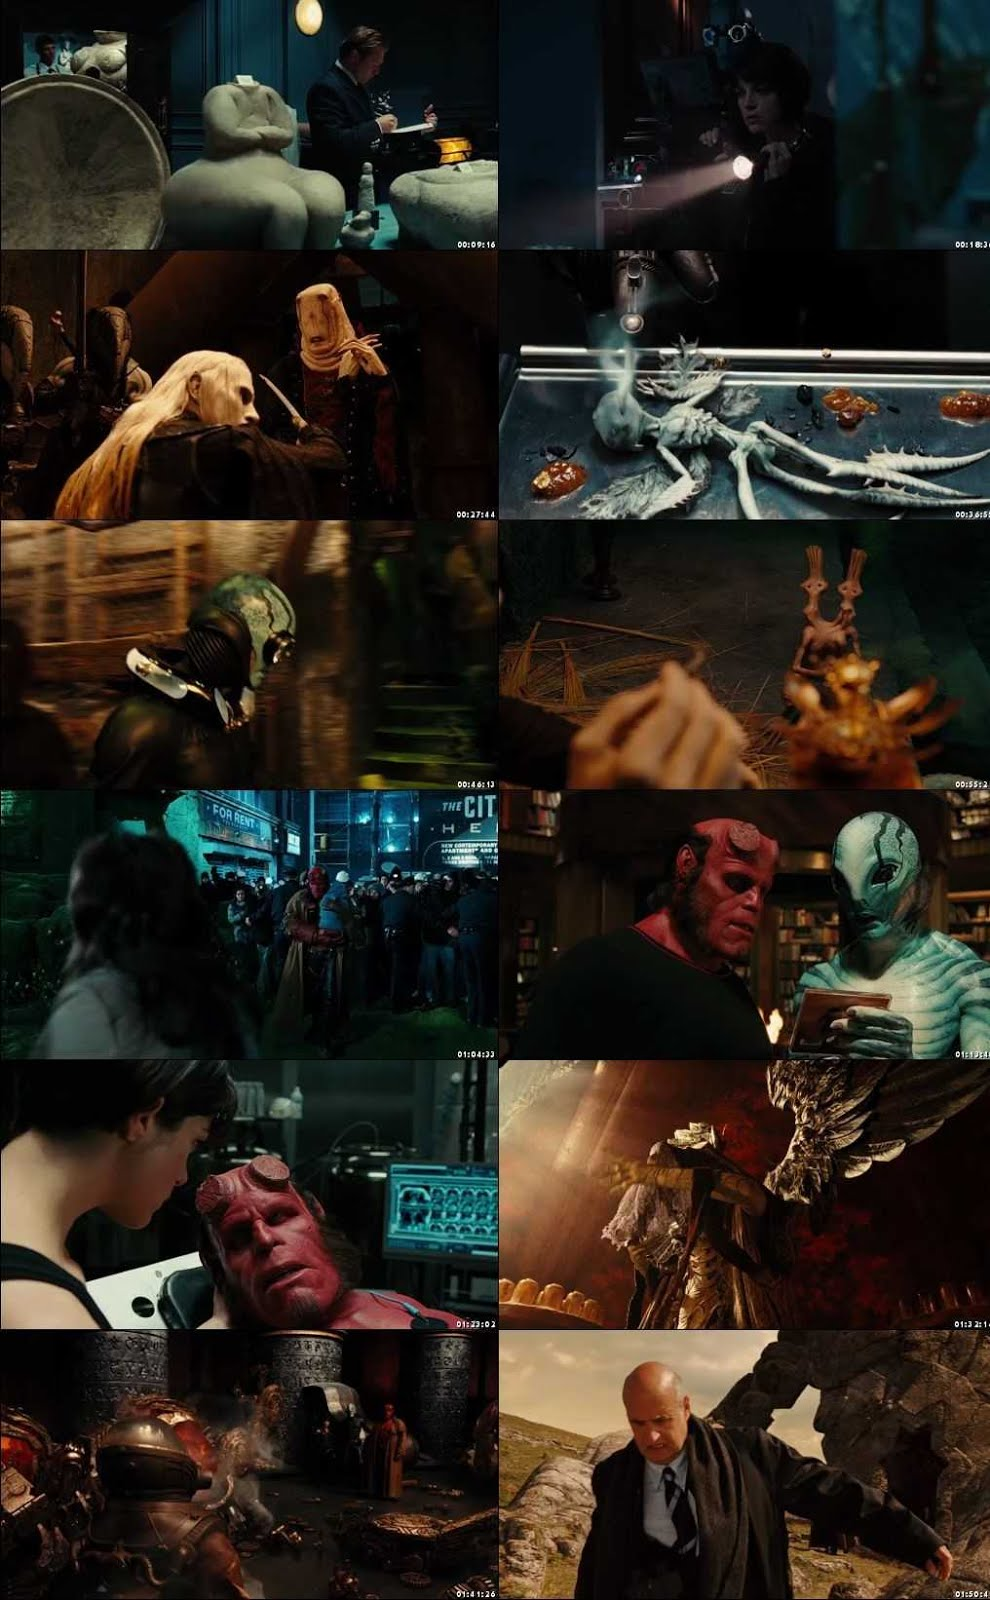 Hellboy II: The Golden Army 2008 Screenshot 1080p